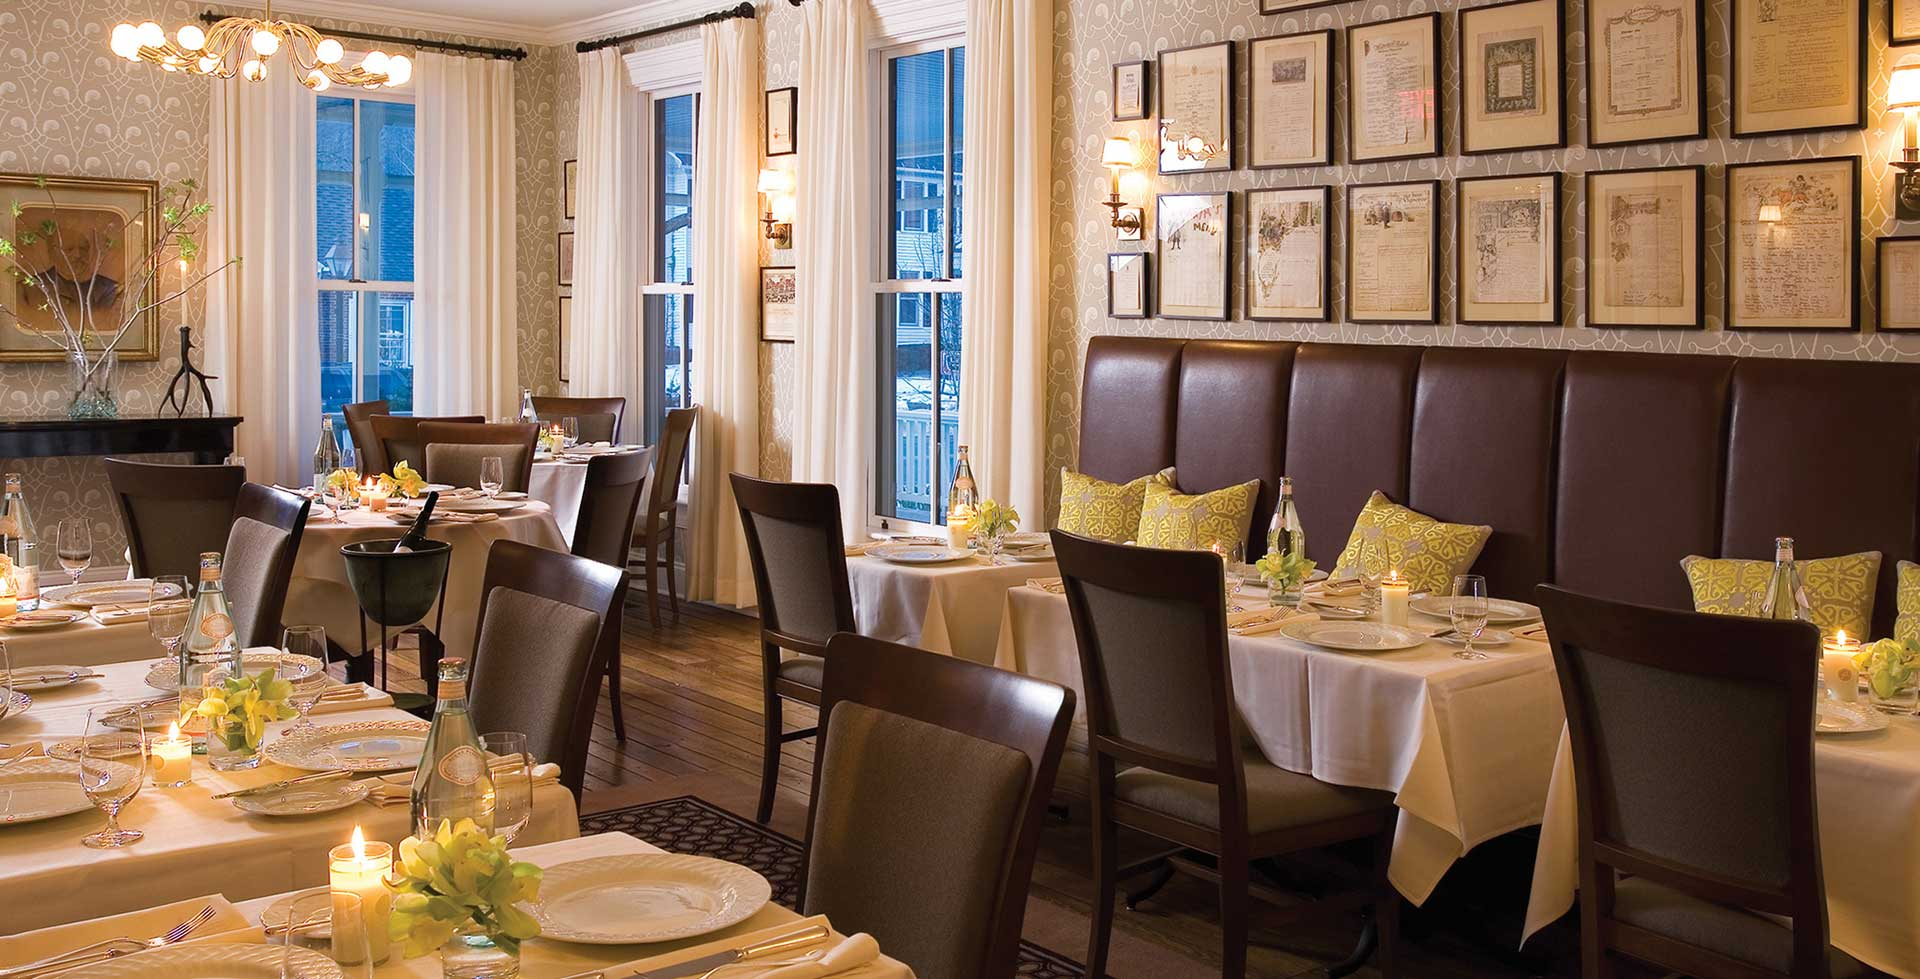 interior of the delmonico room dining area with tables and a booth at hotel fauchere